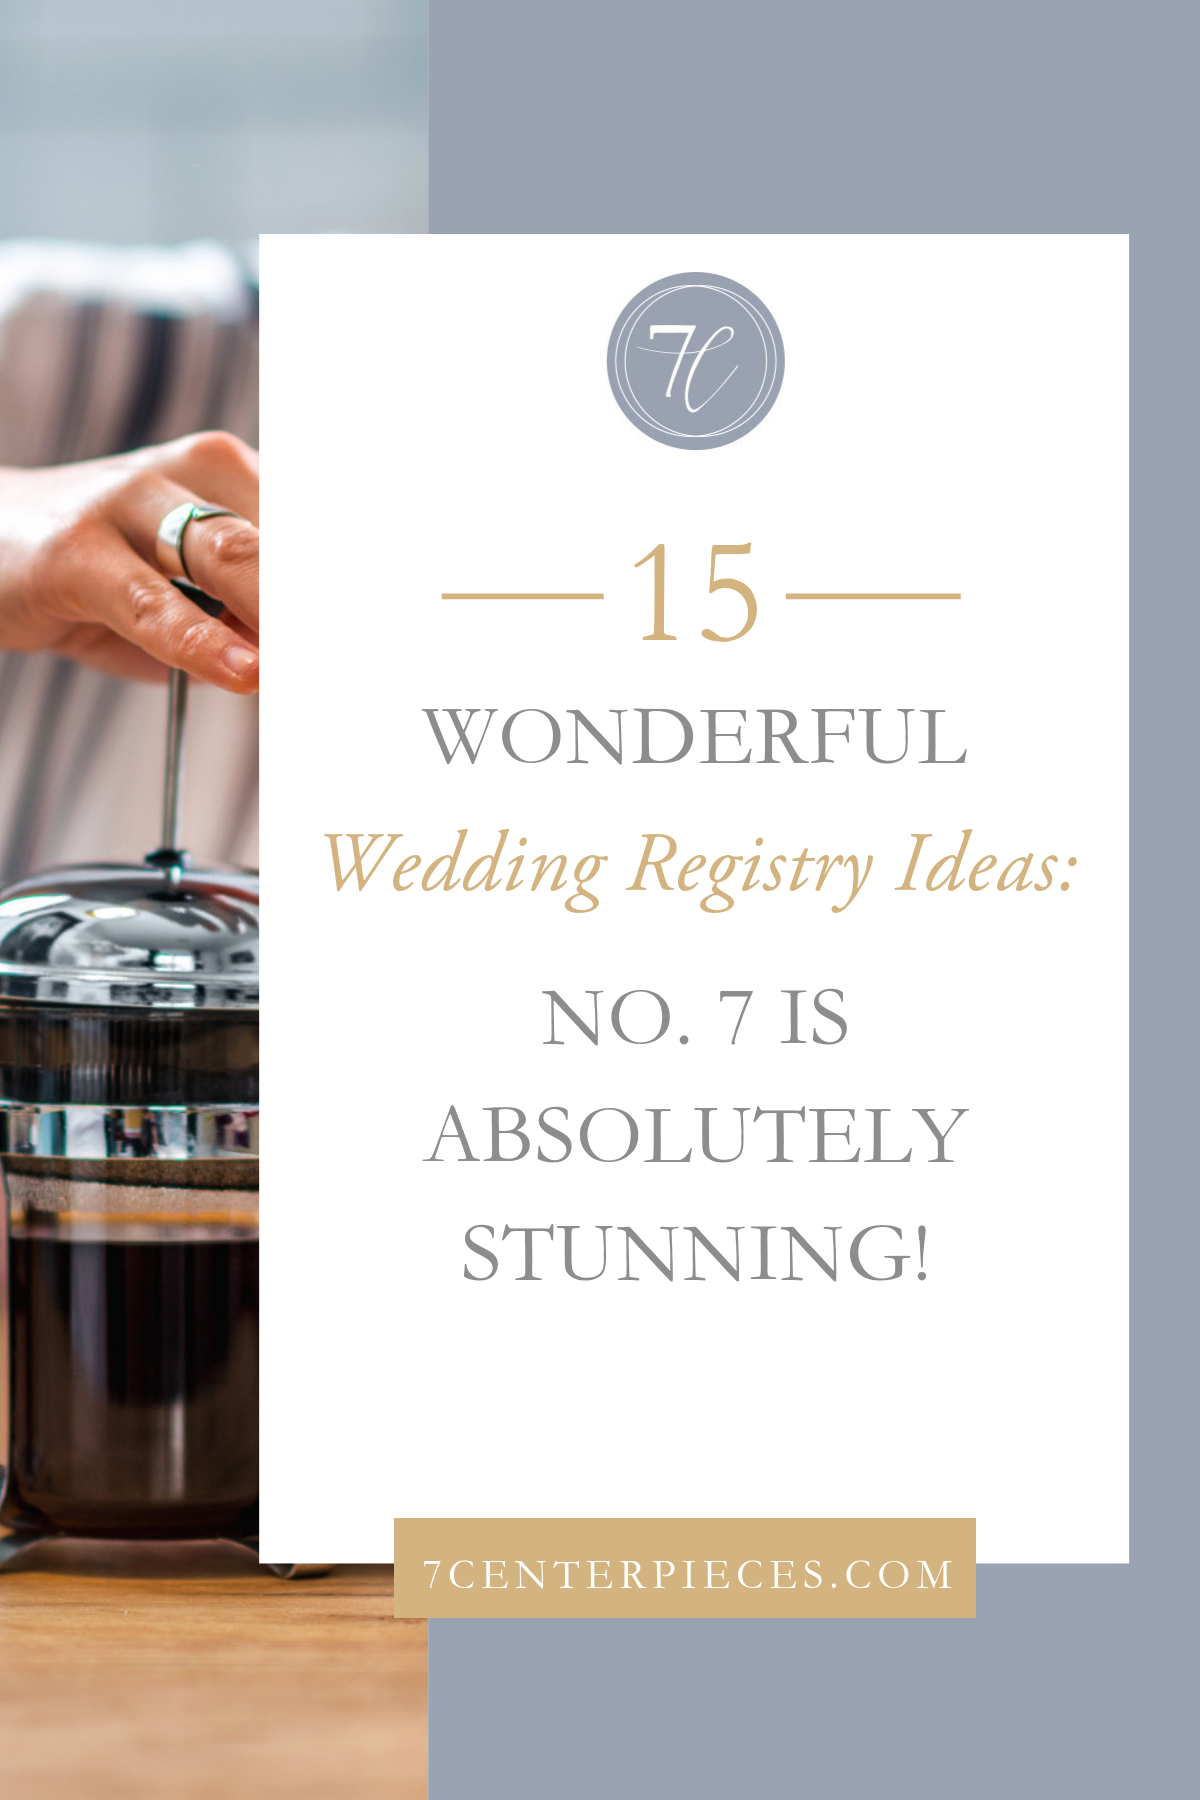 15 Wonderful Wedding Registry Ideas: Number 7 is Absolutely Stunning